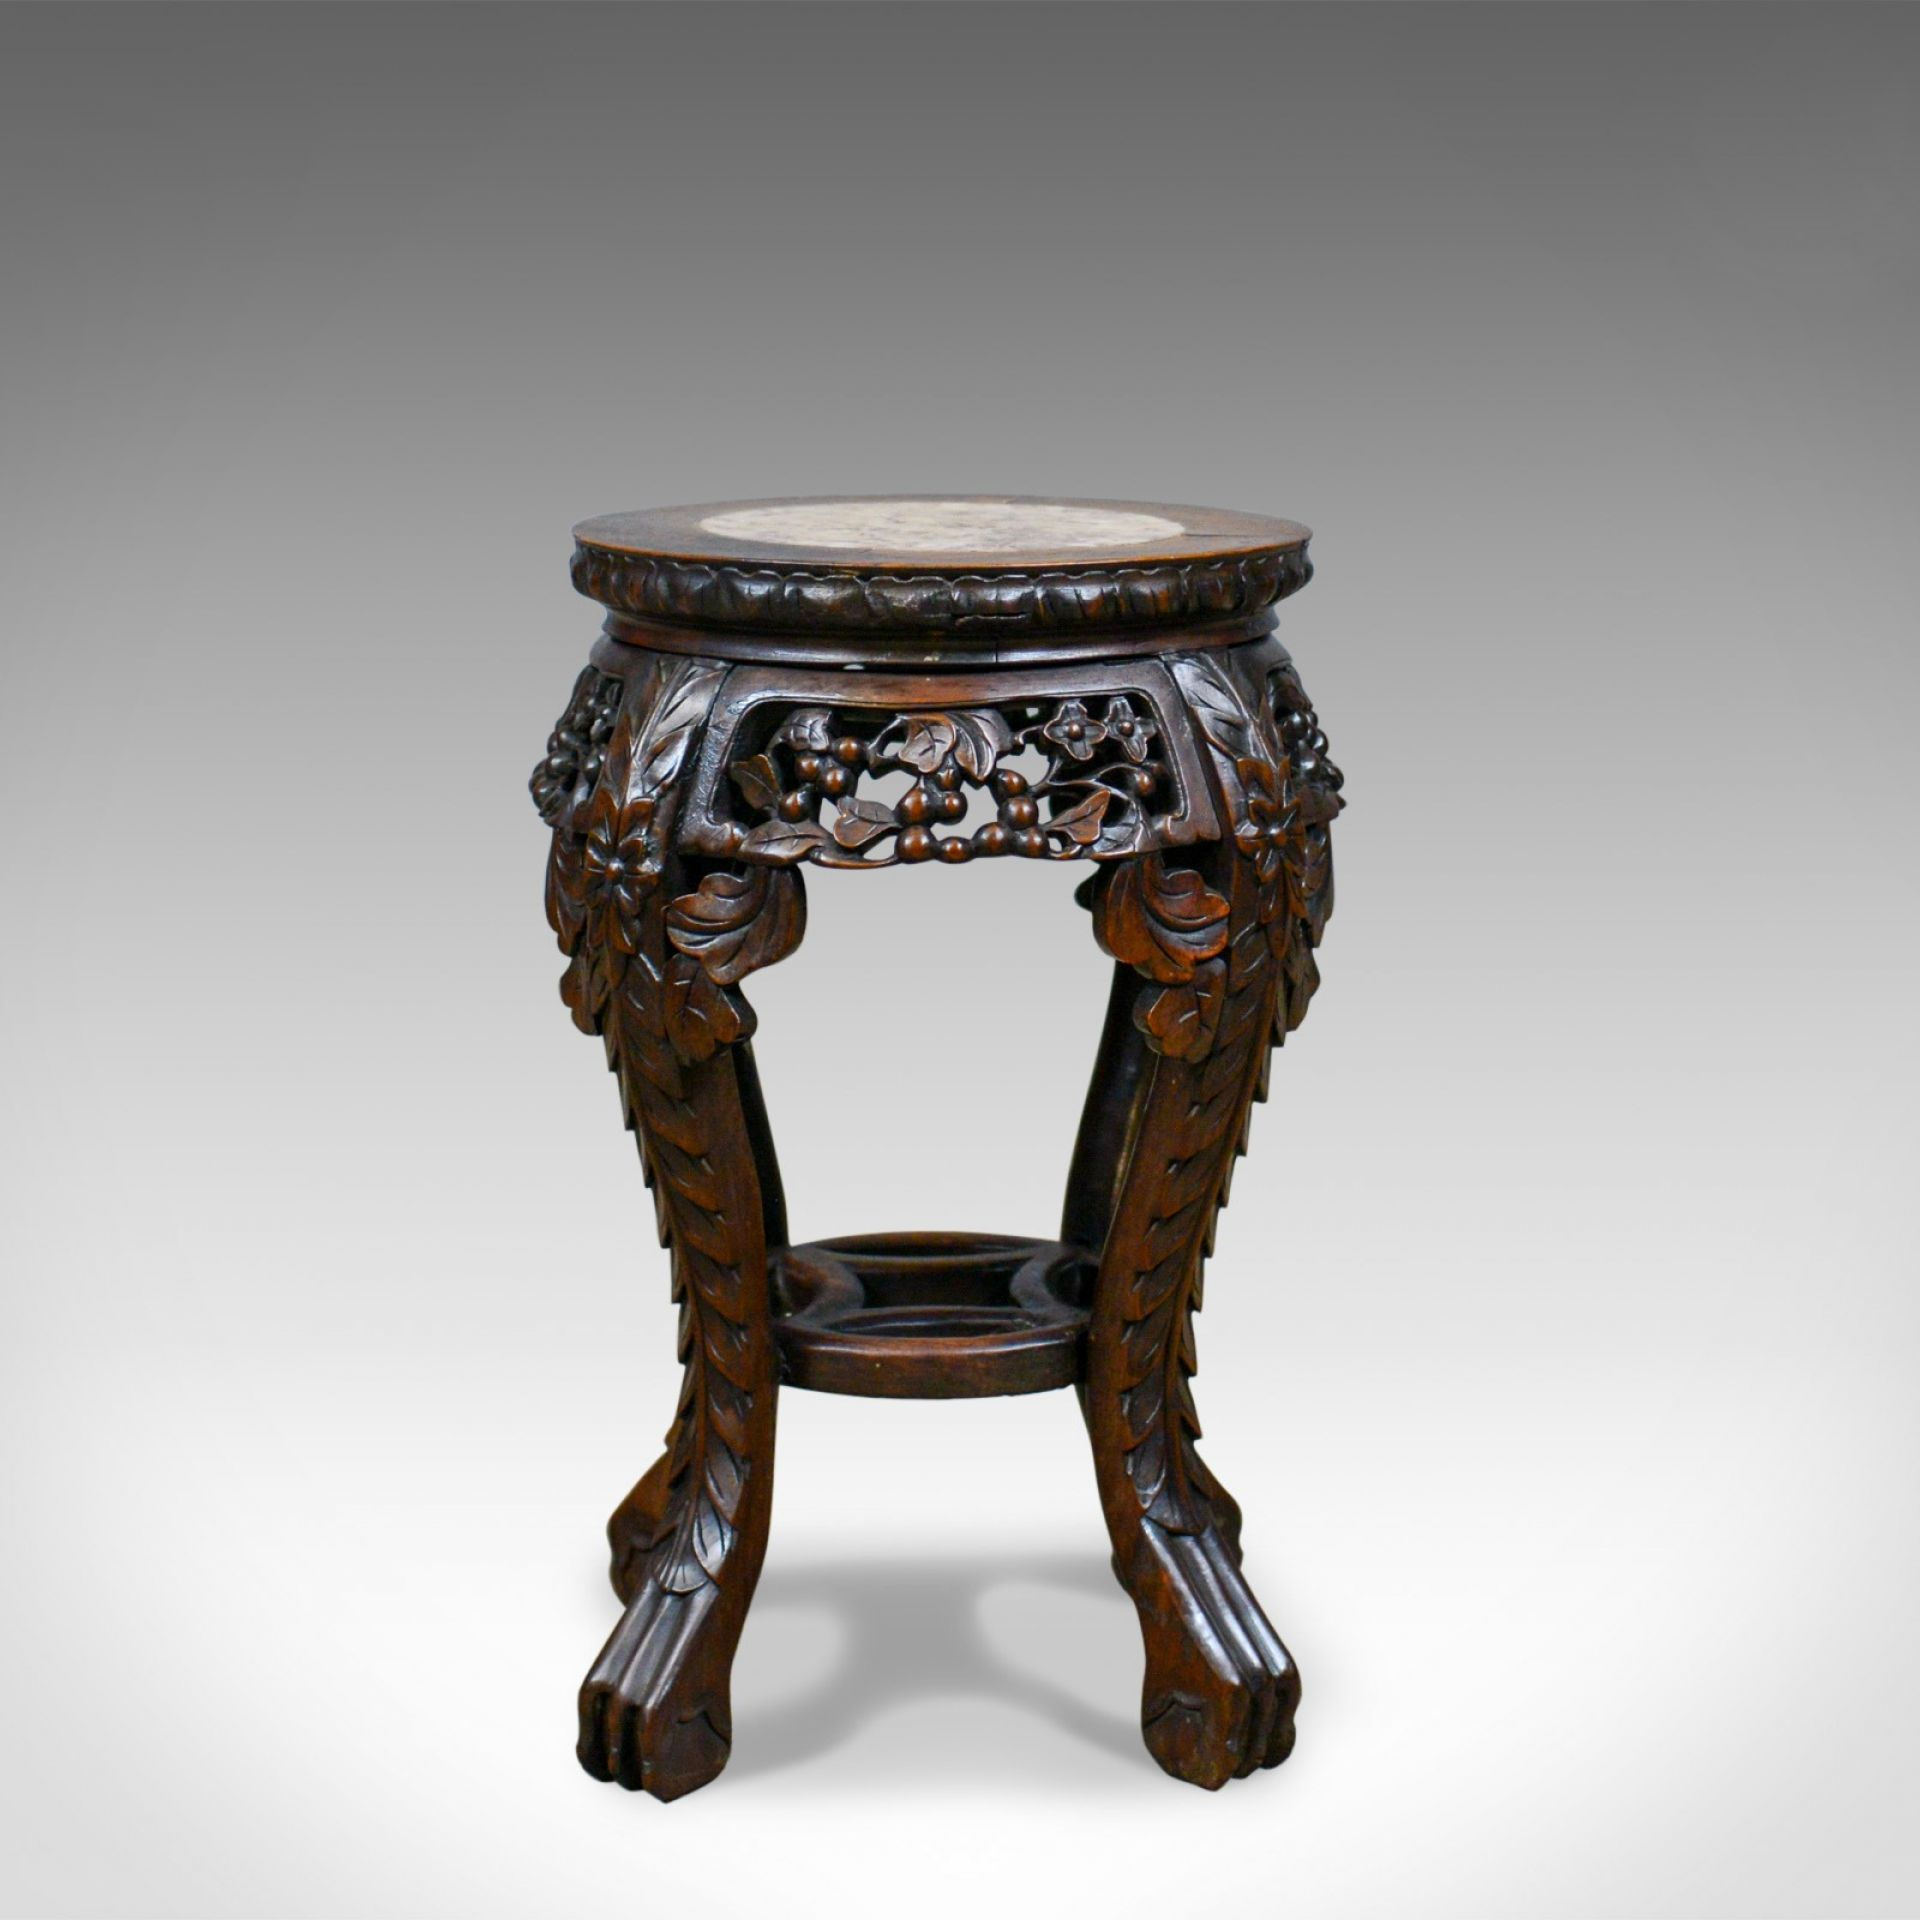 Antique Side Table, Carved, Chinese, Stand, Teak, Marble, Circa 1900